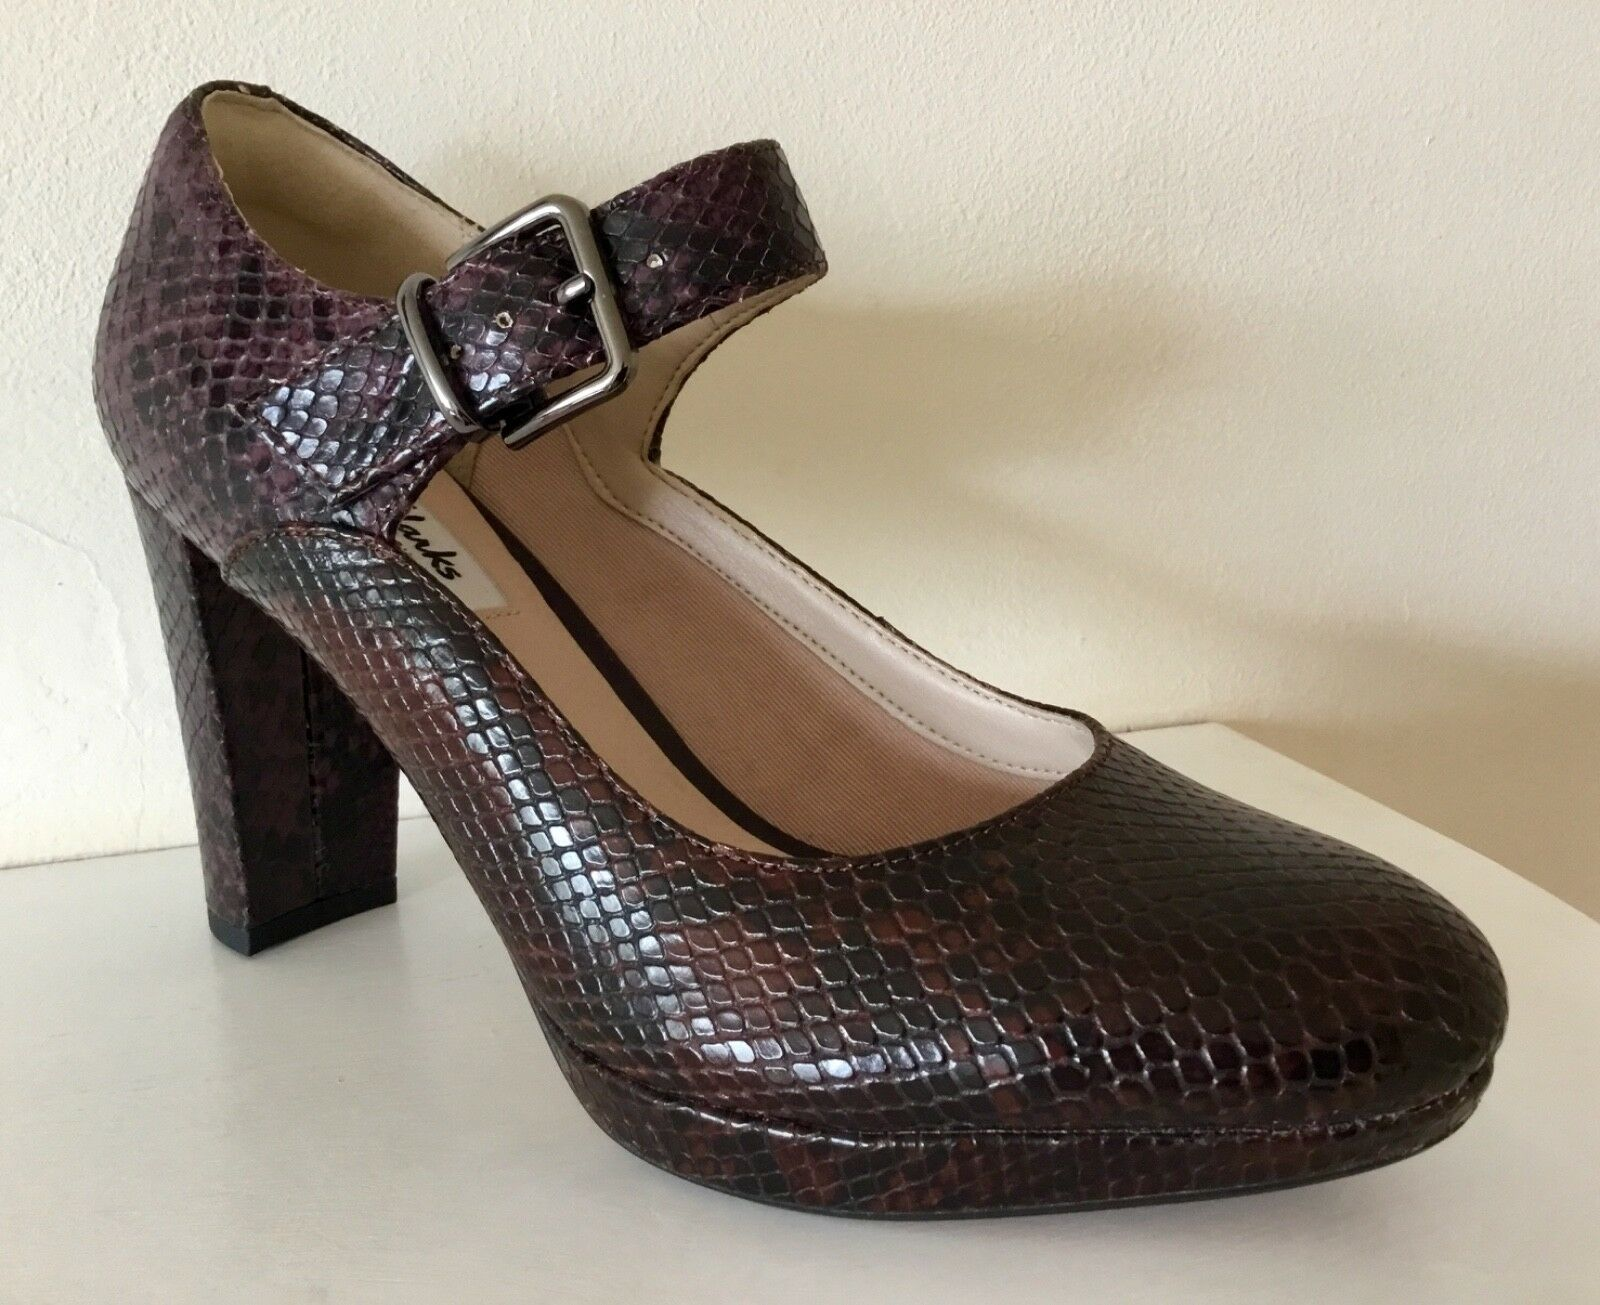 NEW CLARKS LEATHER PLATFORM COURT SHOES, SIZE 6D (EU 39.5) Kendra Gaby snakeskin